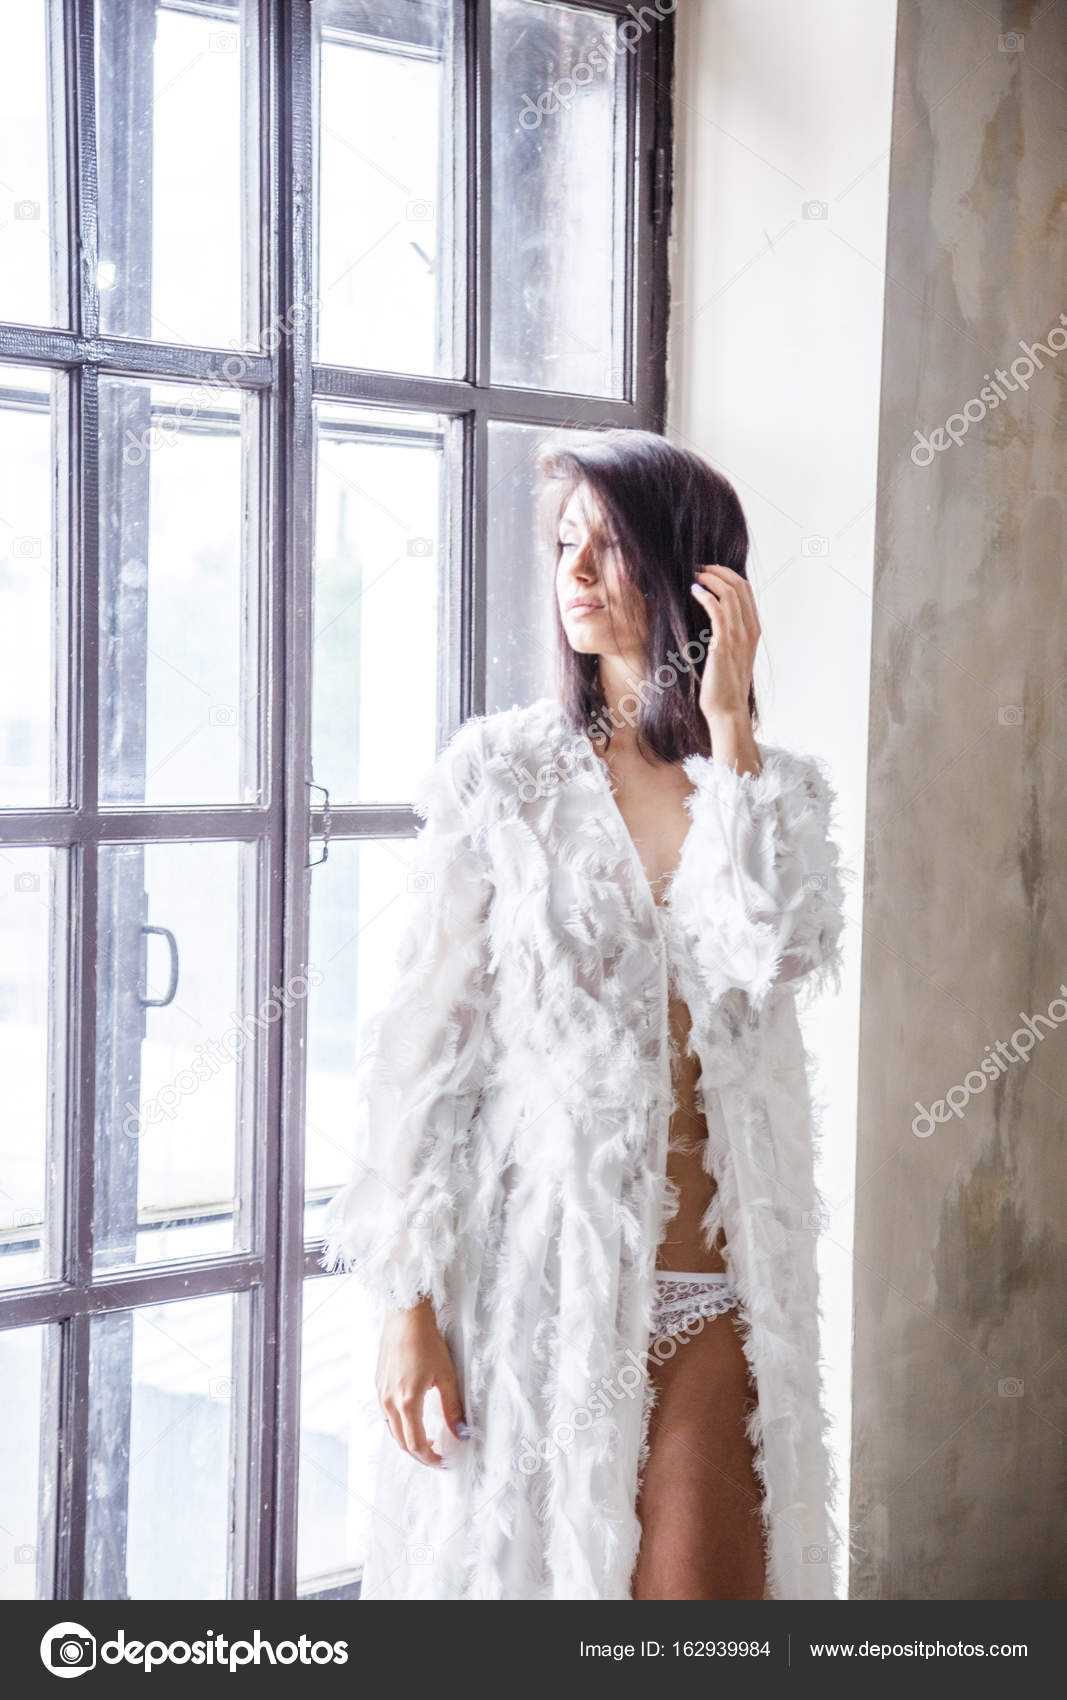 woman in dressing gown posing — Stock Photo © schummyone #162939984